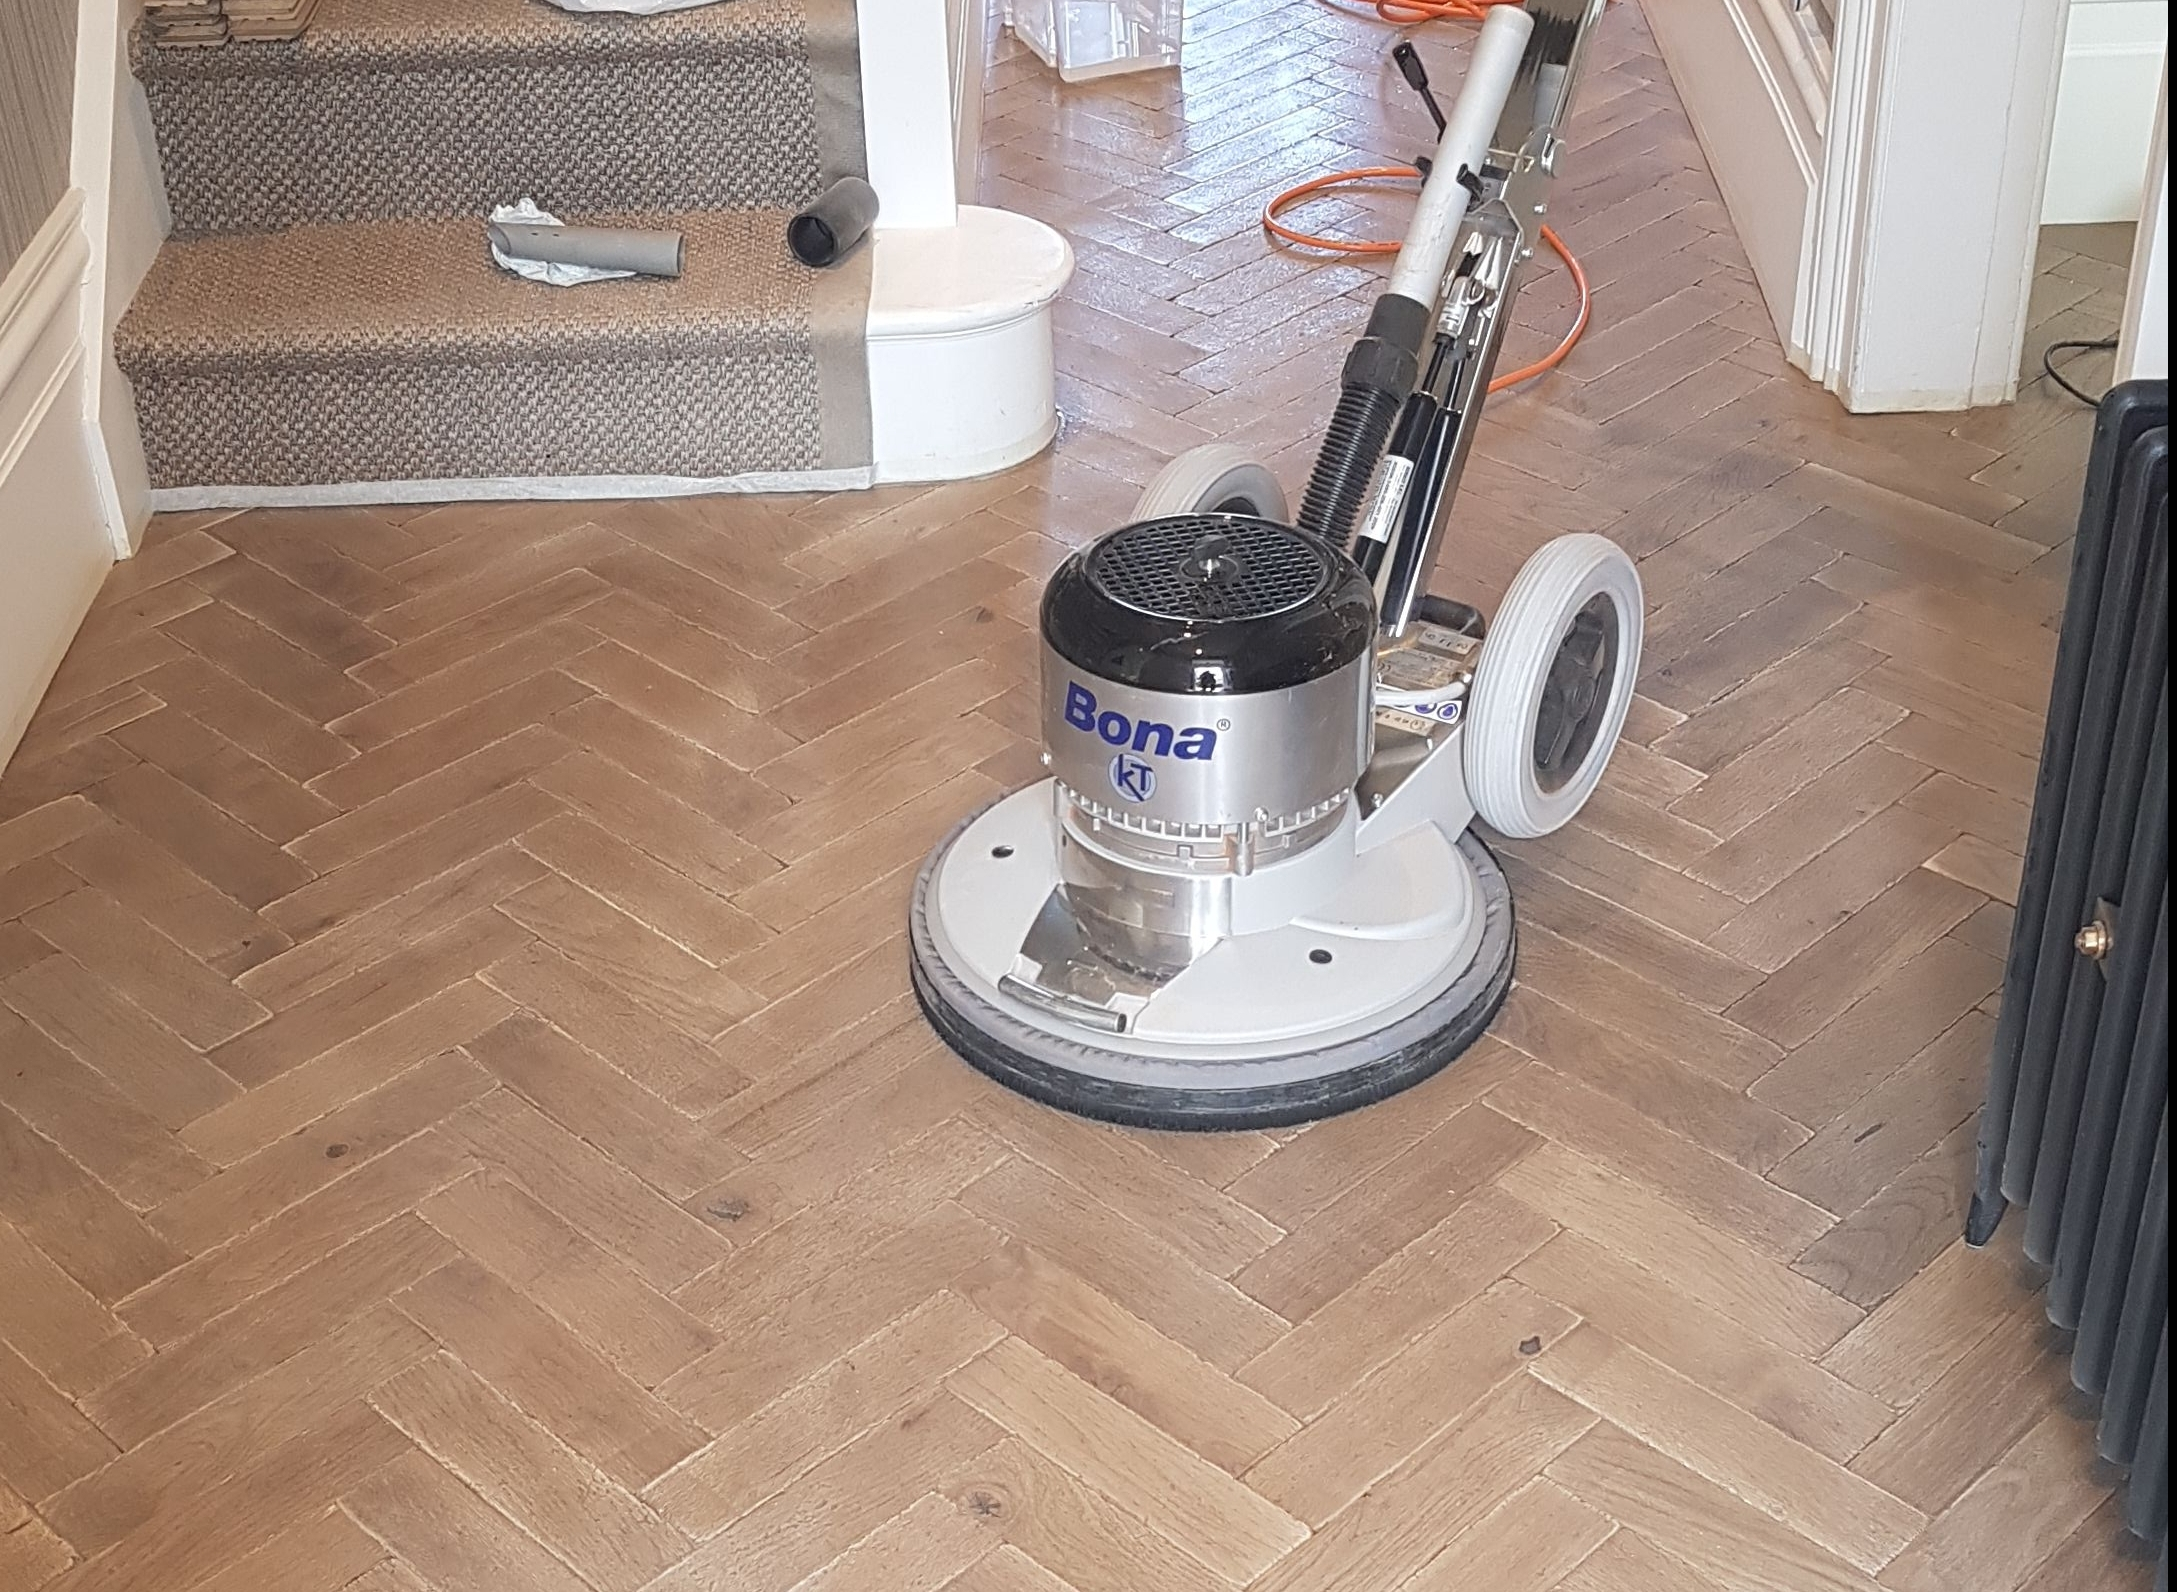 Parquet sanding, staining and sealing in Birmingham